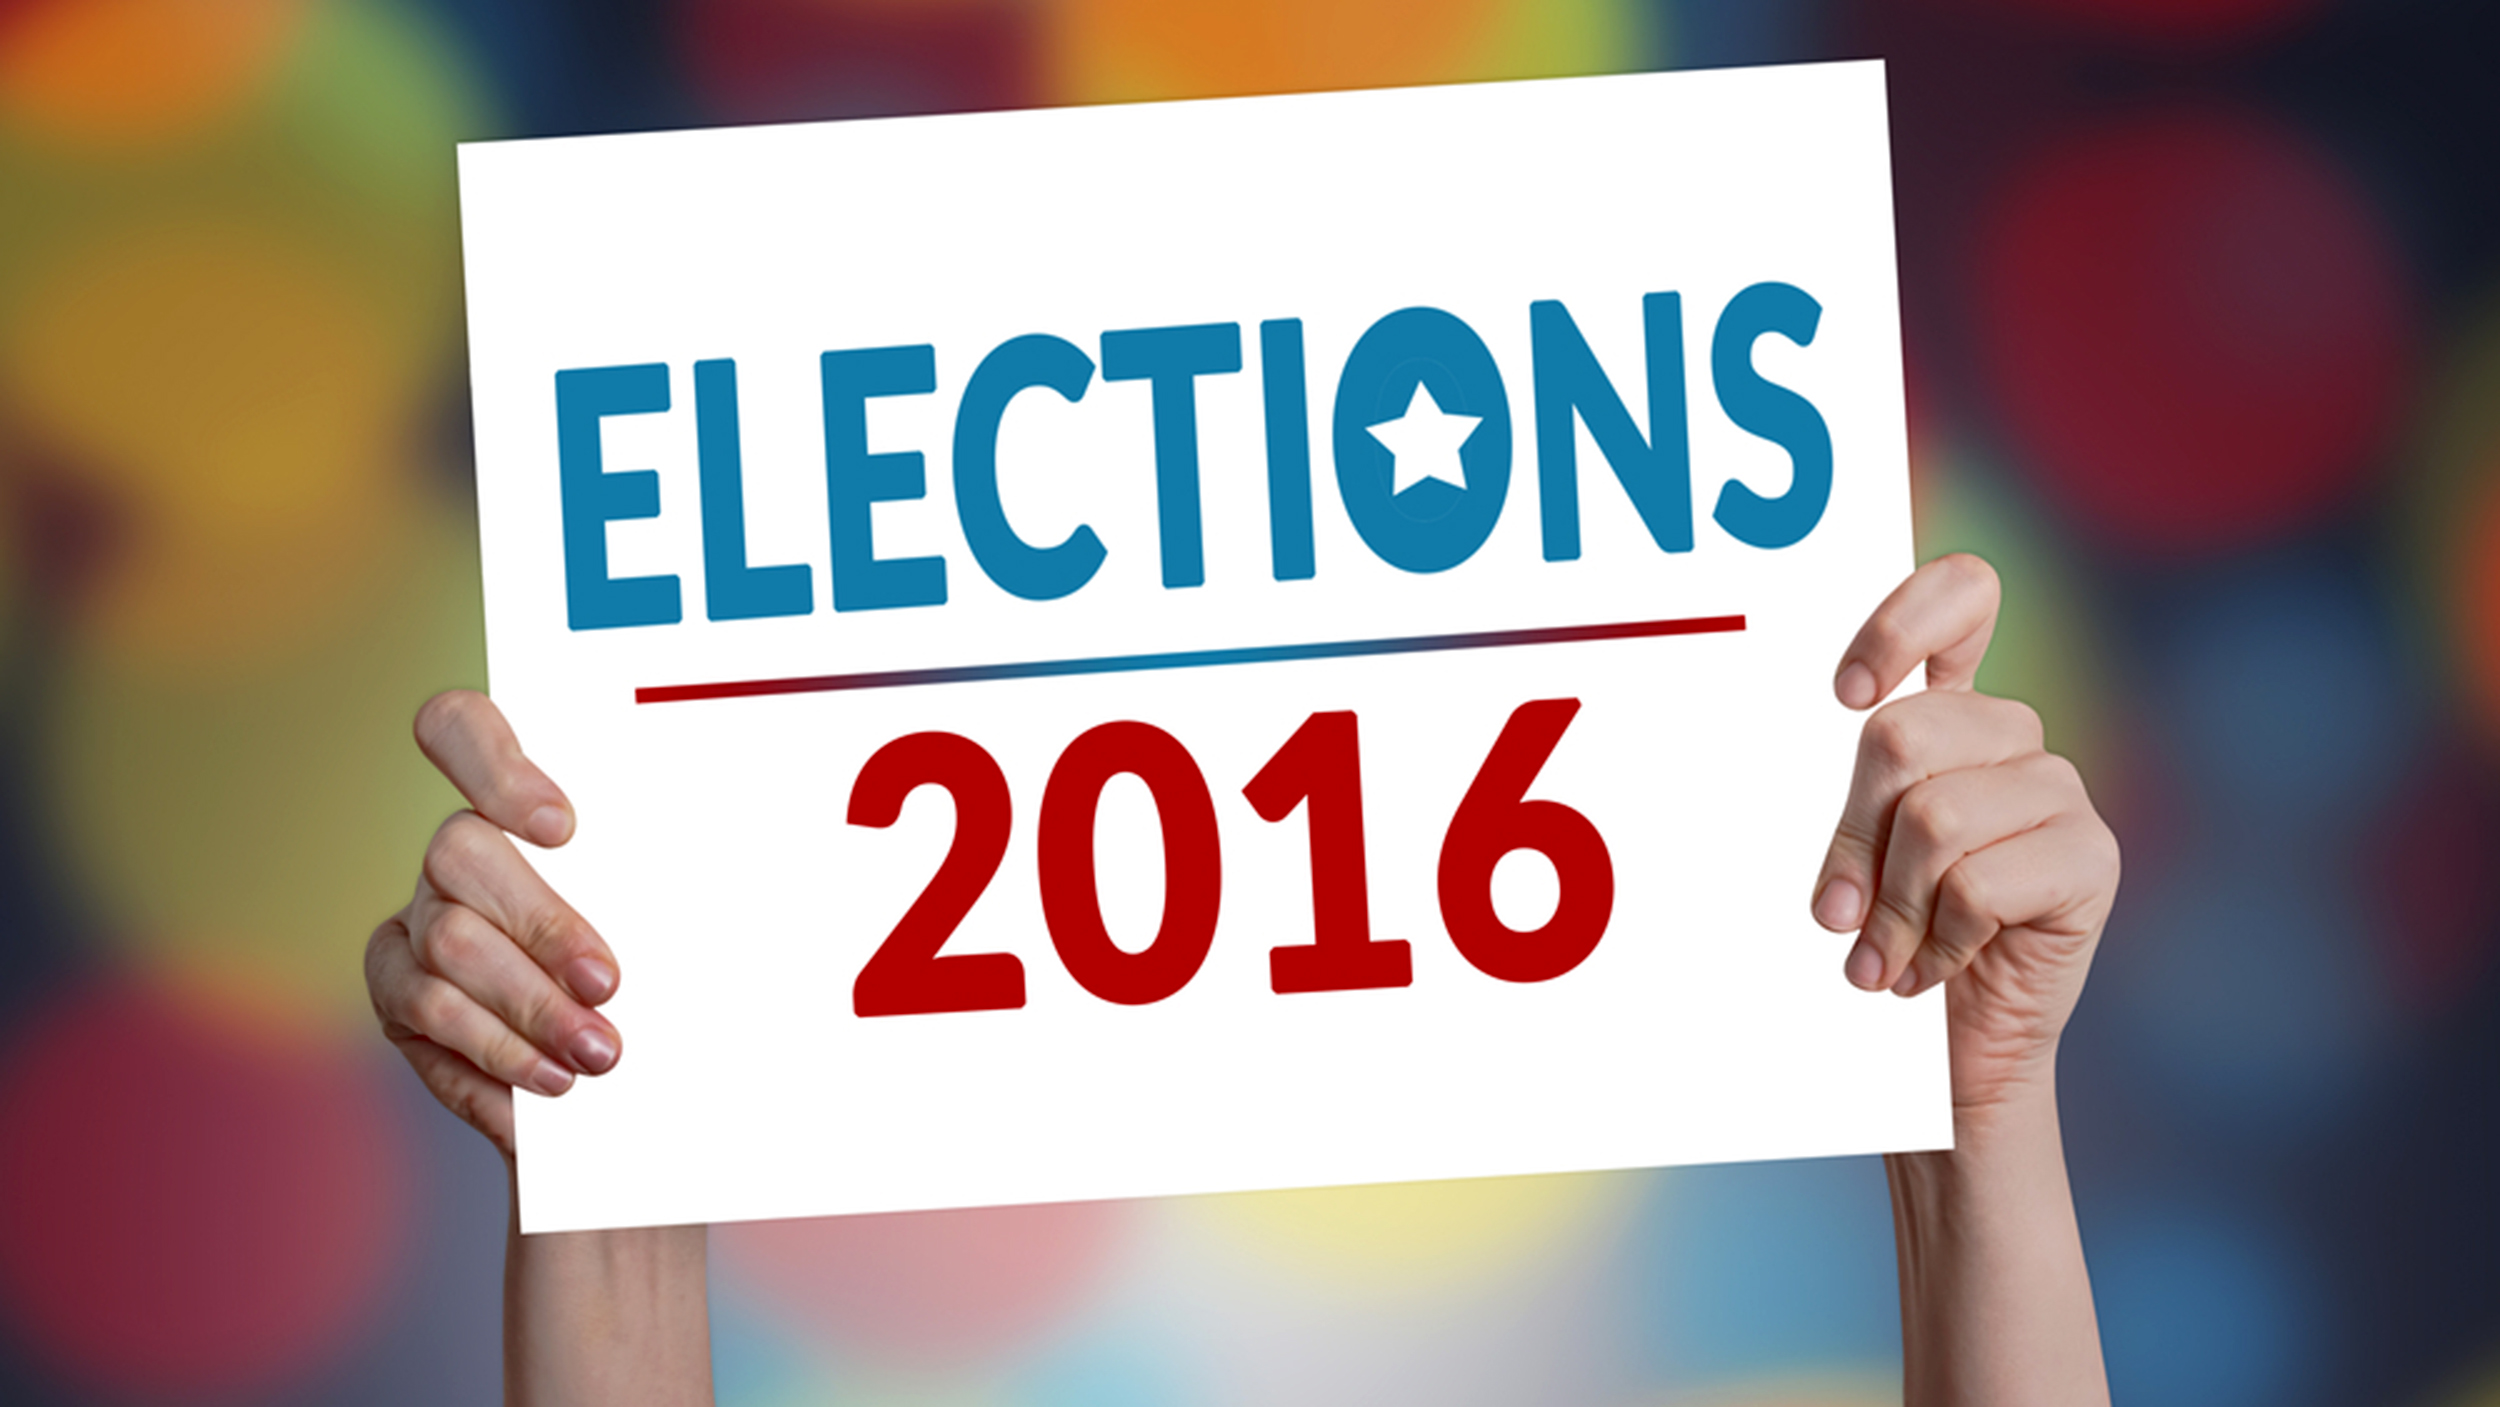 Elections 2016